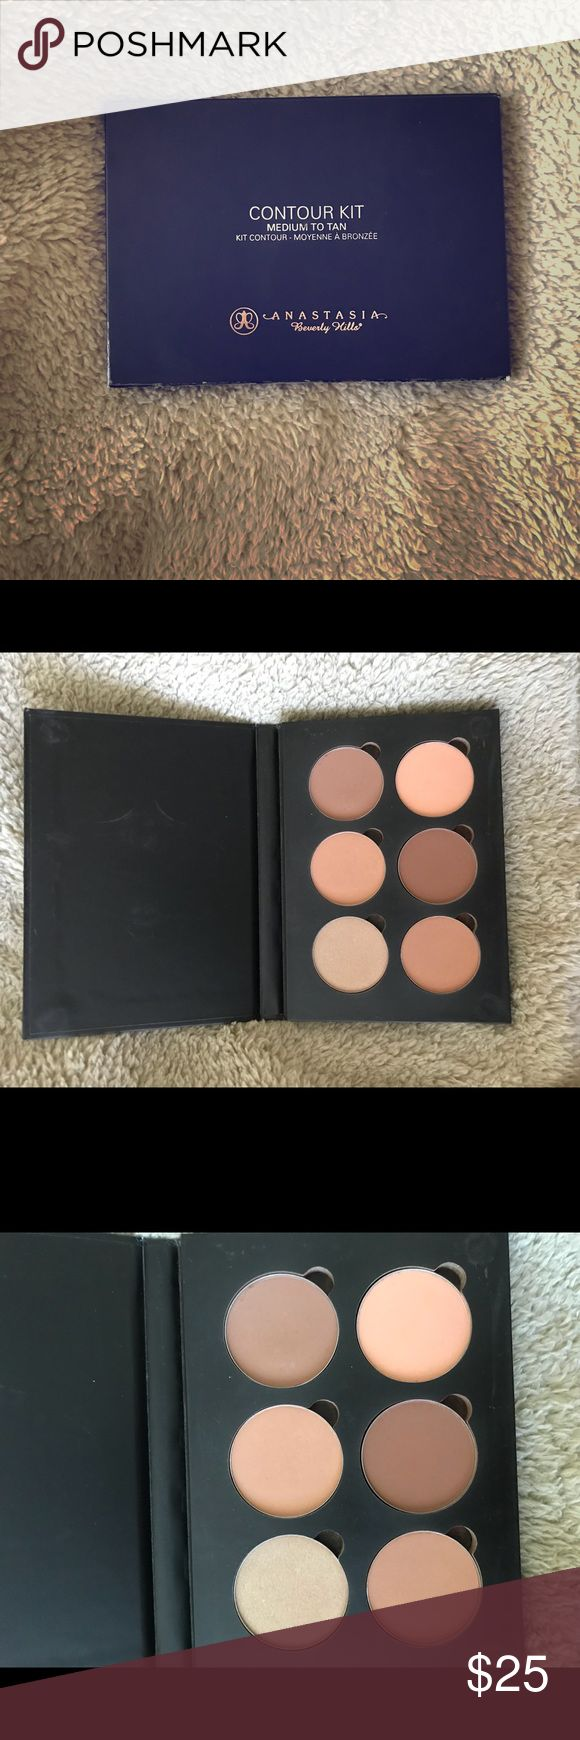 Anastasia Beverly Hills Contour Kit Only used a few times. Amazing kit with everything you need. Color is medium to tan. Read the reviews online, they're great! Anastasia Beverly Hills Makeup Bronzer